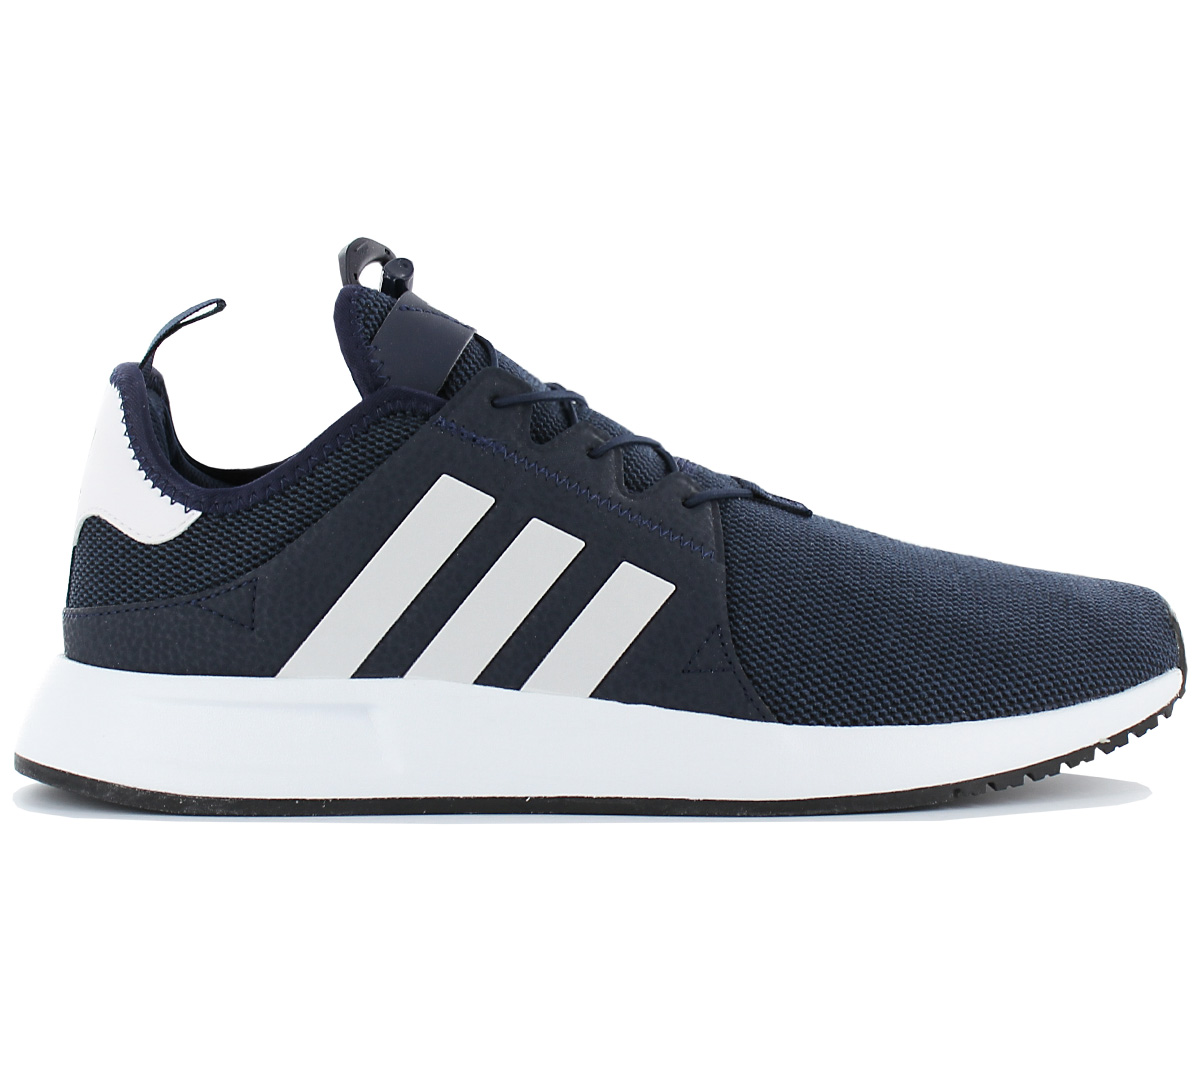 0ecd5bcd3b3 Adidas Originals x Plr Men s Sneakers Shoes Sneakers Navy Blue ...